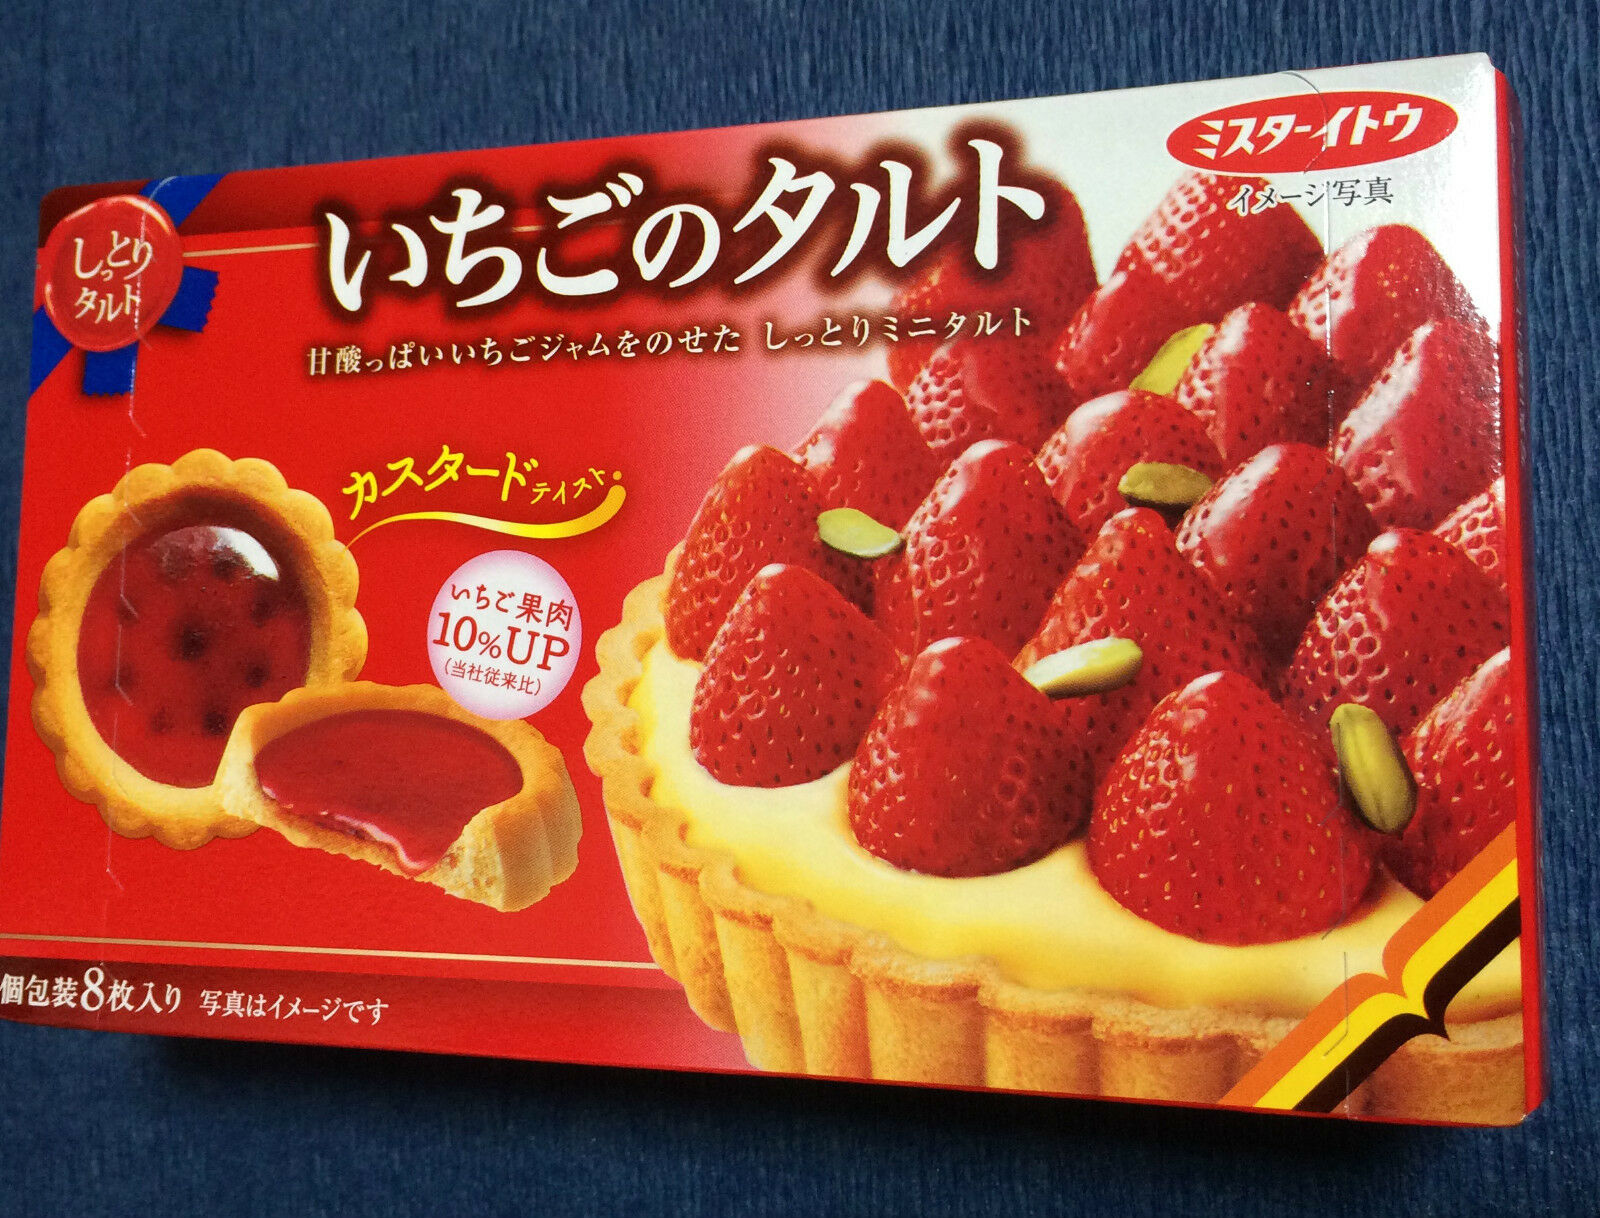 1 box Strawberry Tarts / Ichigo Tart - Japanese Biscuits / Cookies  Snacks Japan